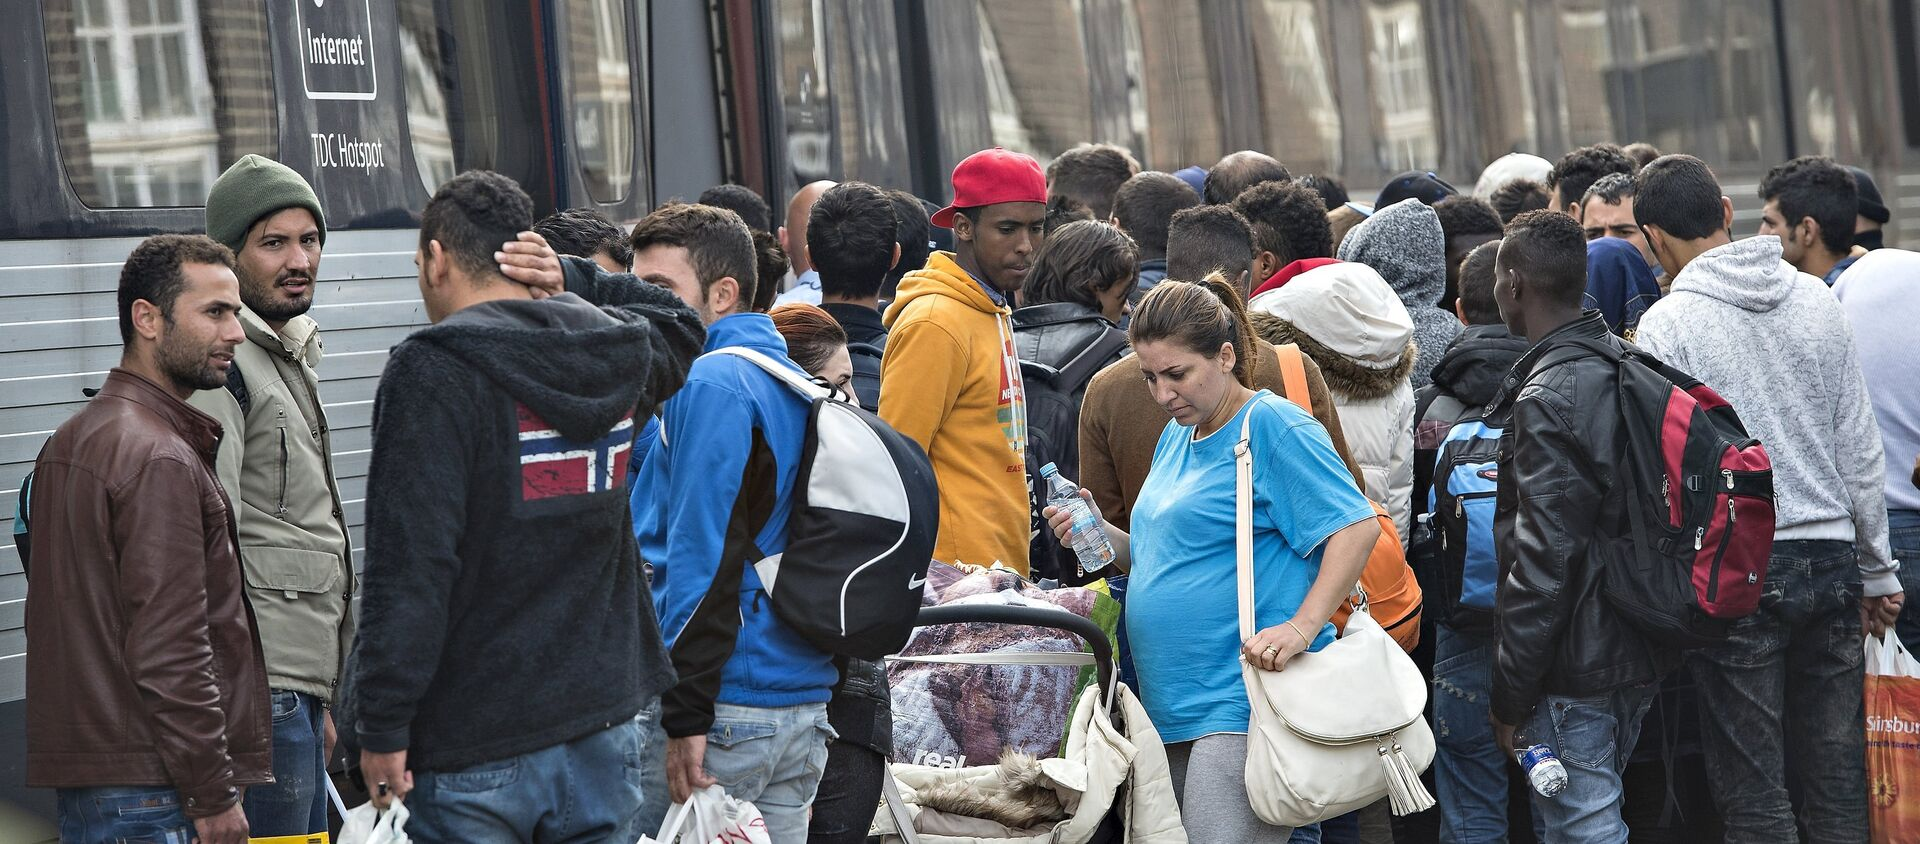 Migrants, mainly from Syria, prepare to board a train headed for Sweden, at Padborg station in southern Denmark September 10, 2015 - Sputnik International, 1920, 12.09.2019